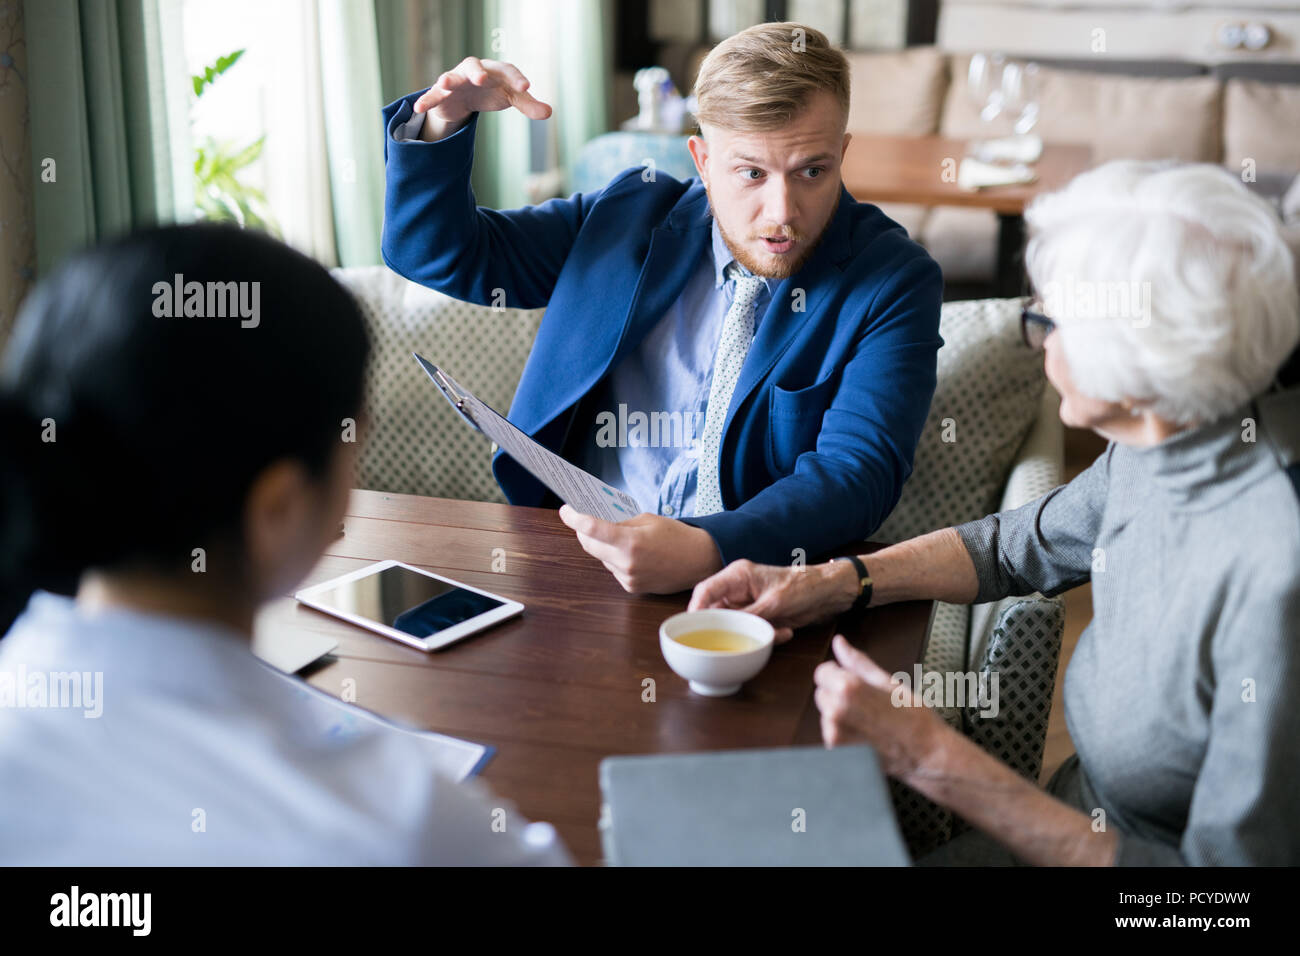 Business meeting at cafe - Stock Image